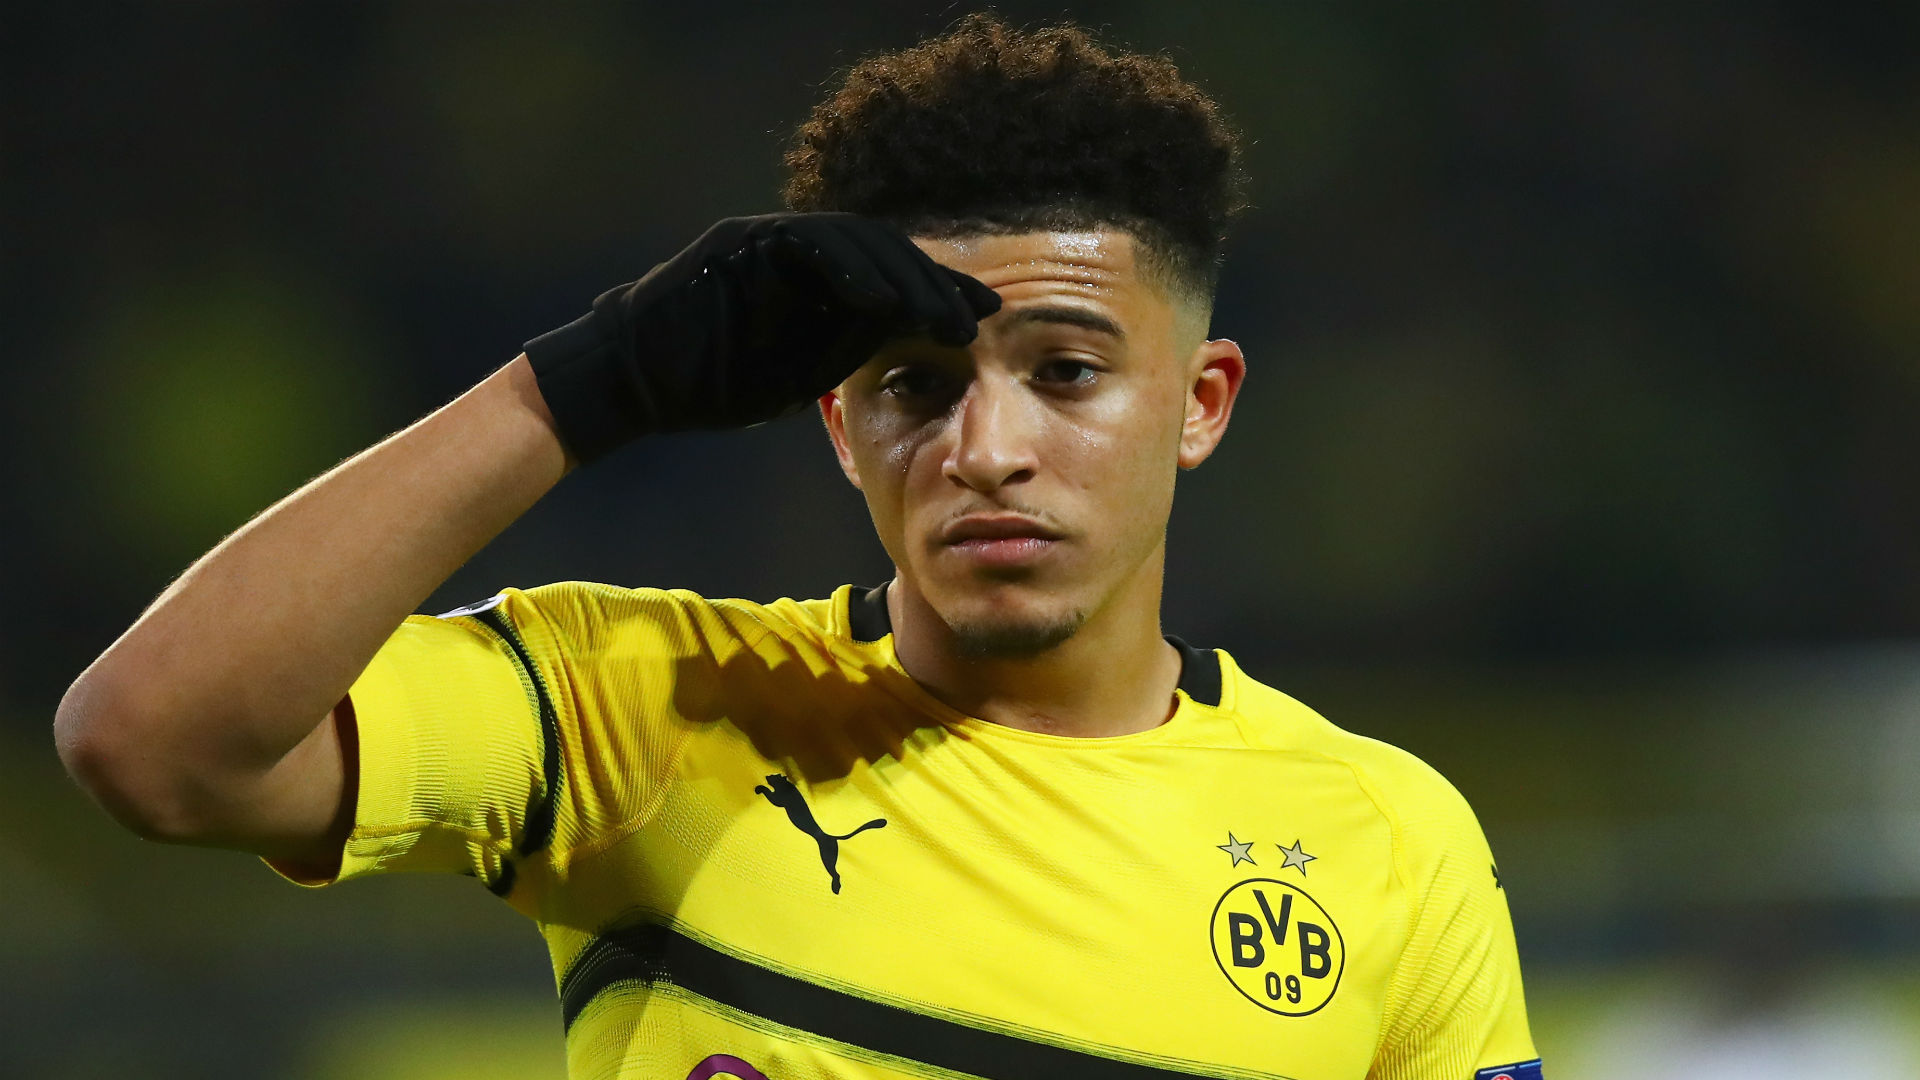 Guardiola unsure if Sancho would have succeeded at Man City